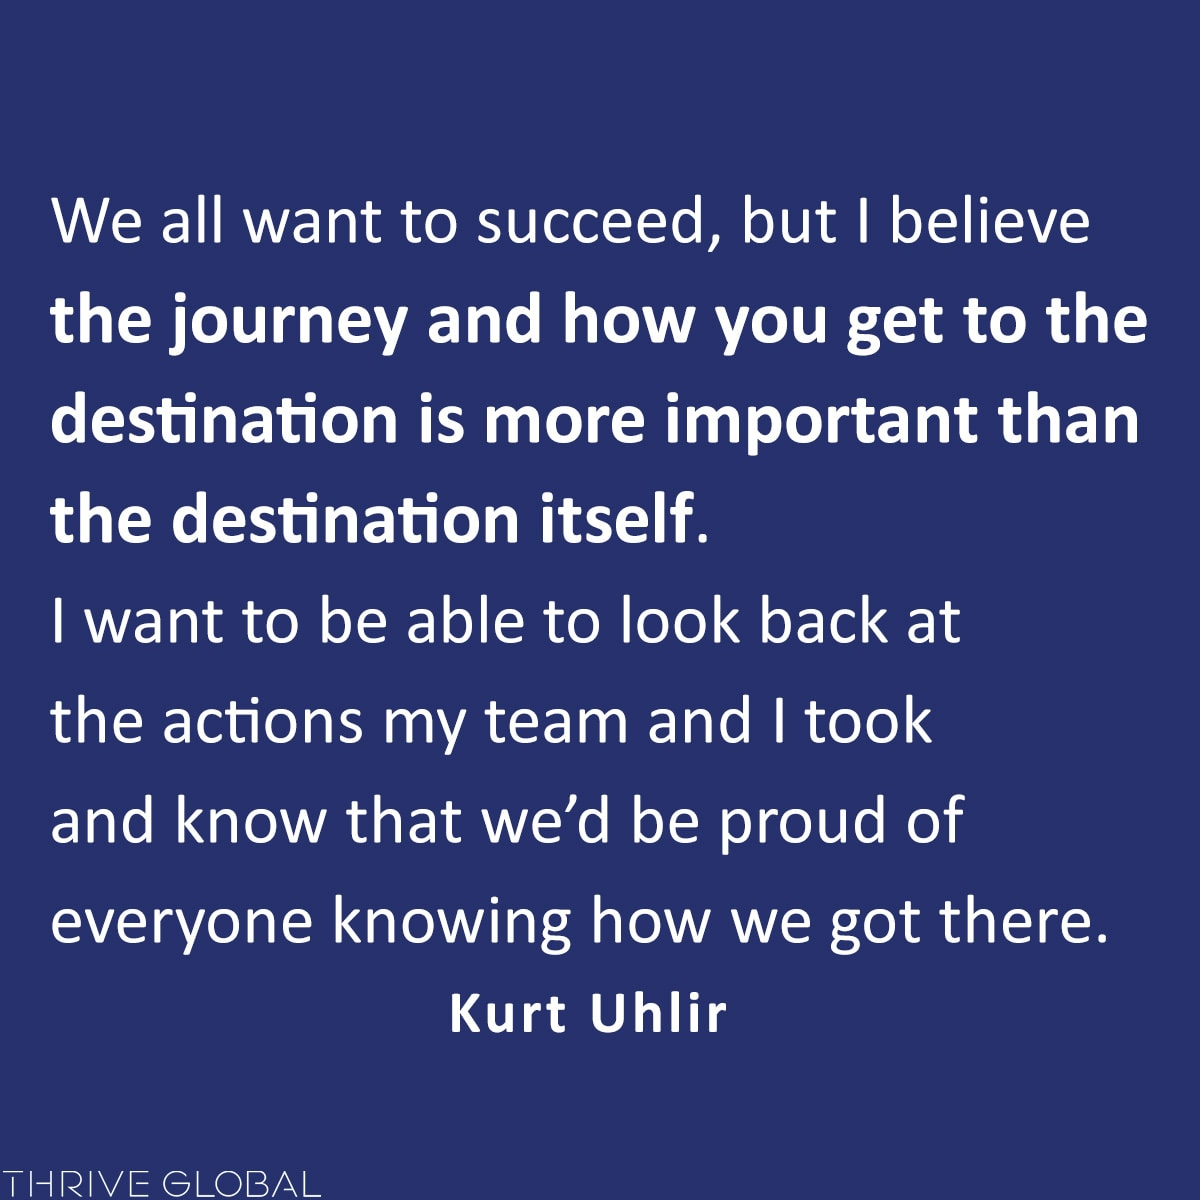 the journey and how you get to the destination is more important than the destination itself